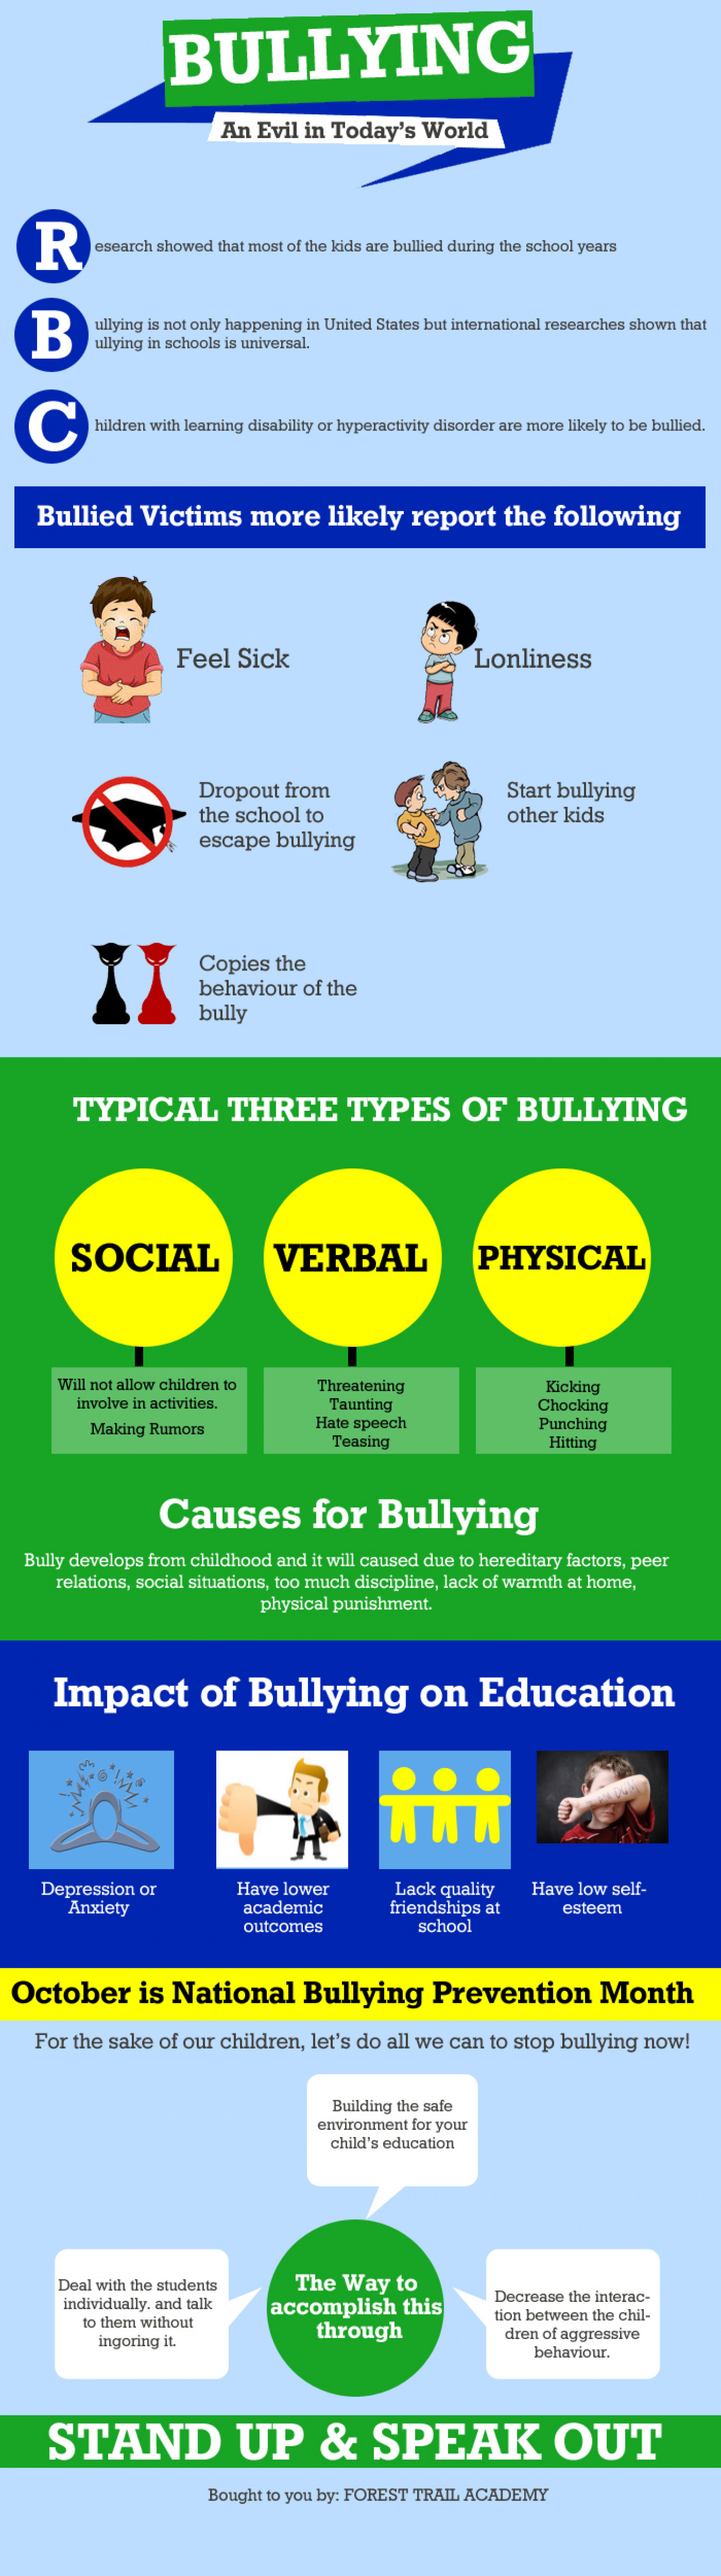 bullying in today's world Essay on bullying in today s worldbullying in today's world bullying in today's world a topic of great concern among american society, and parents in particular, is that of youth violence the media often makes the situation appear as though youth violence is on the increase in the united states.